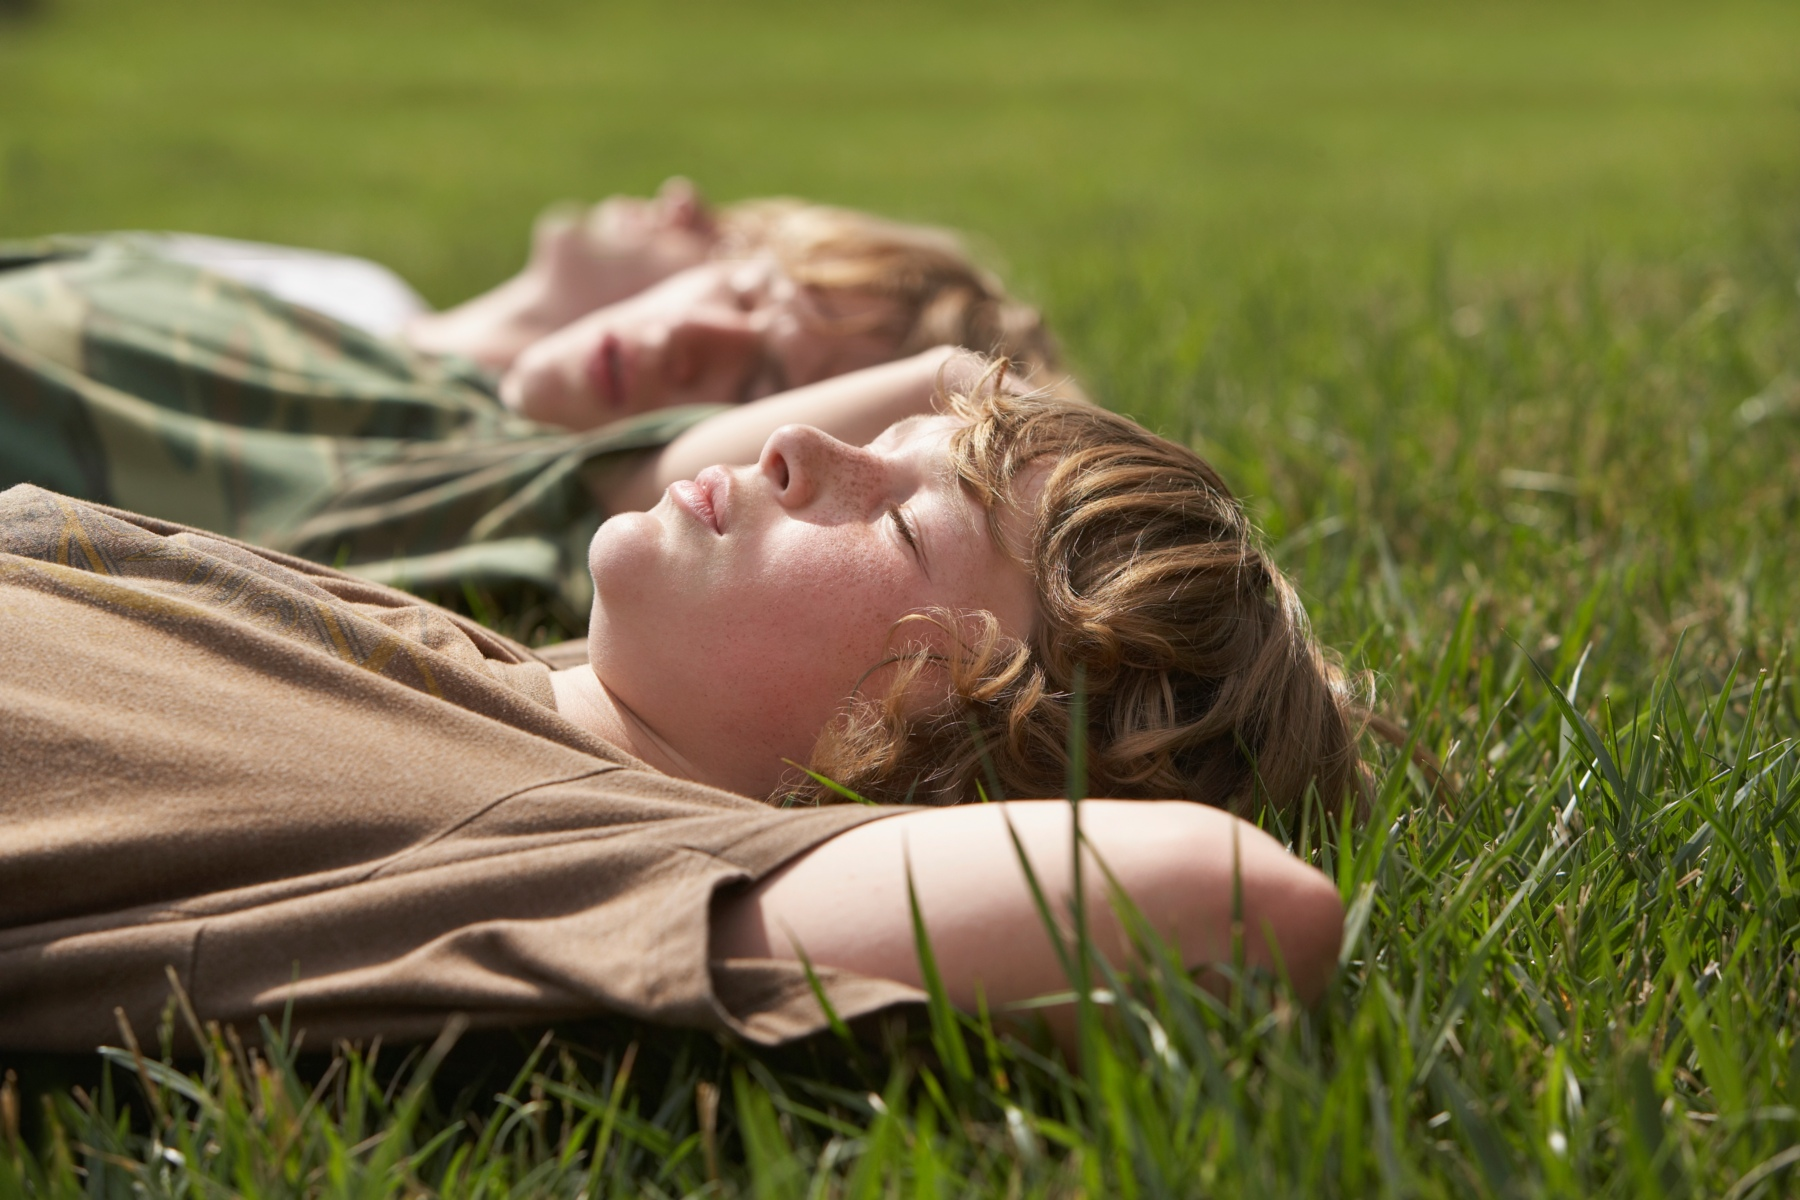 Young men trying mindfulness on grass